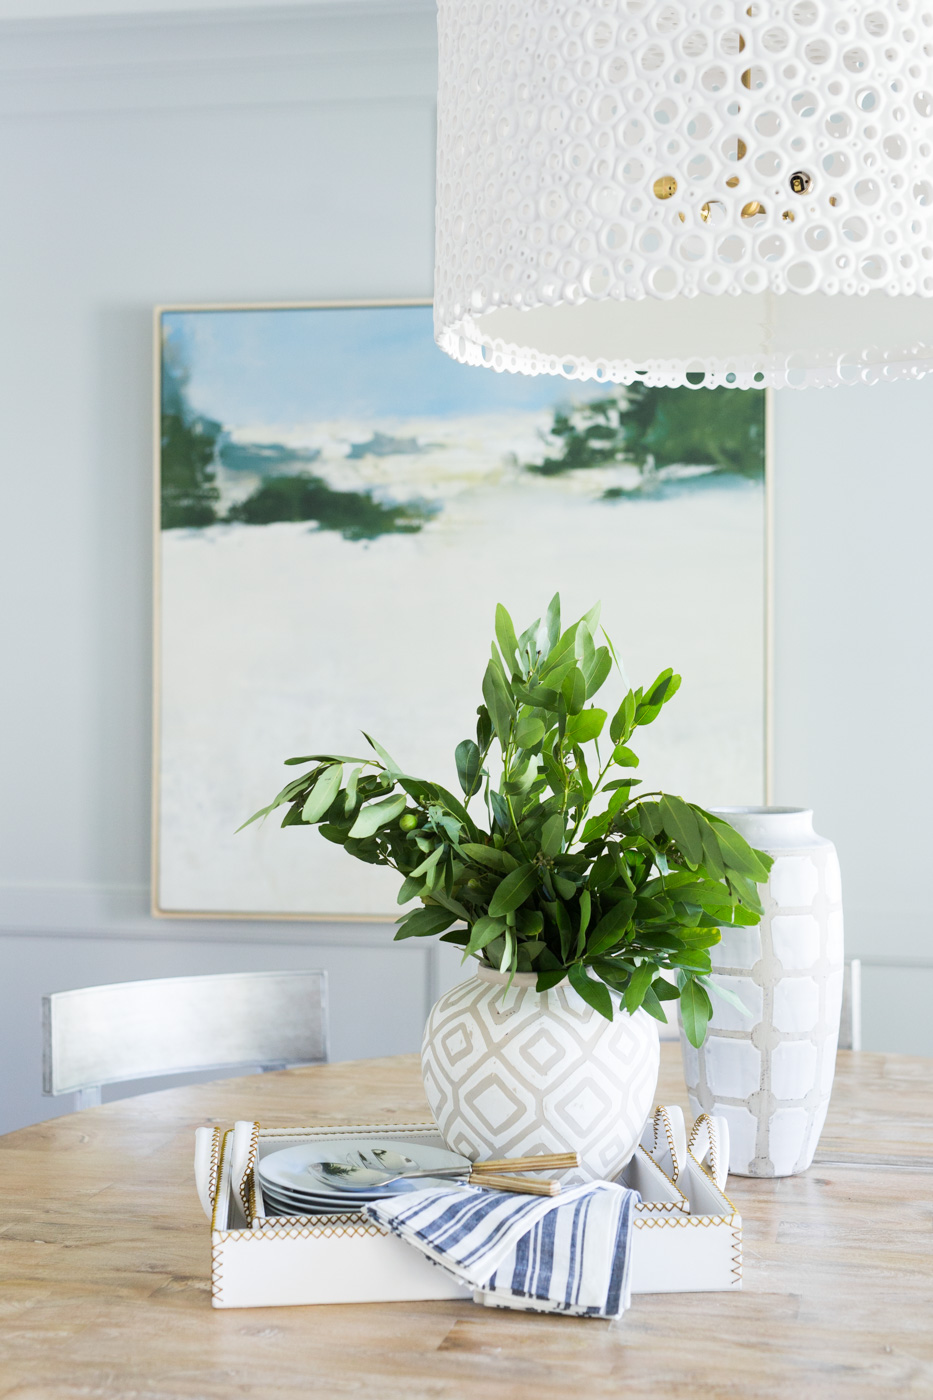 Plant details atop dining room table